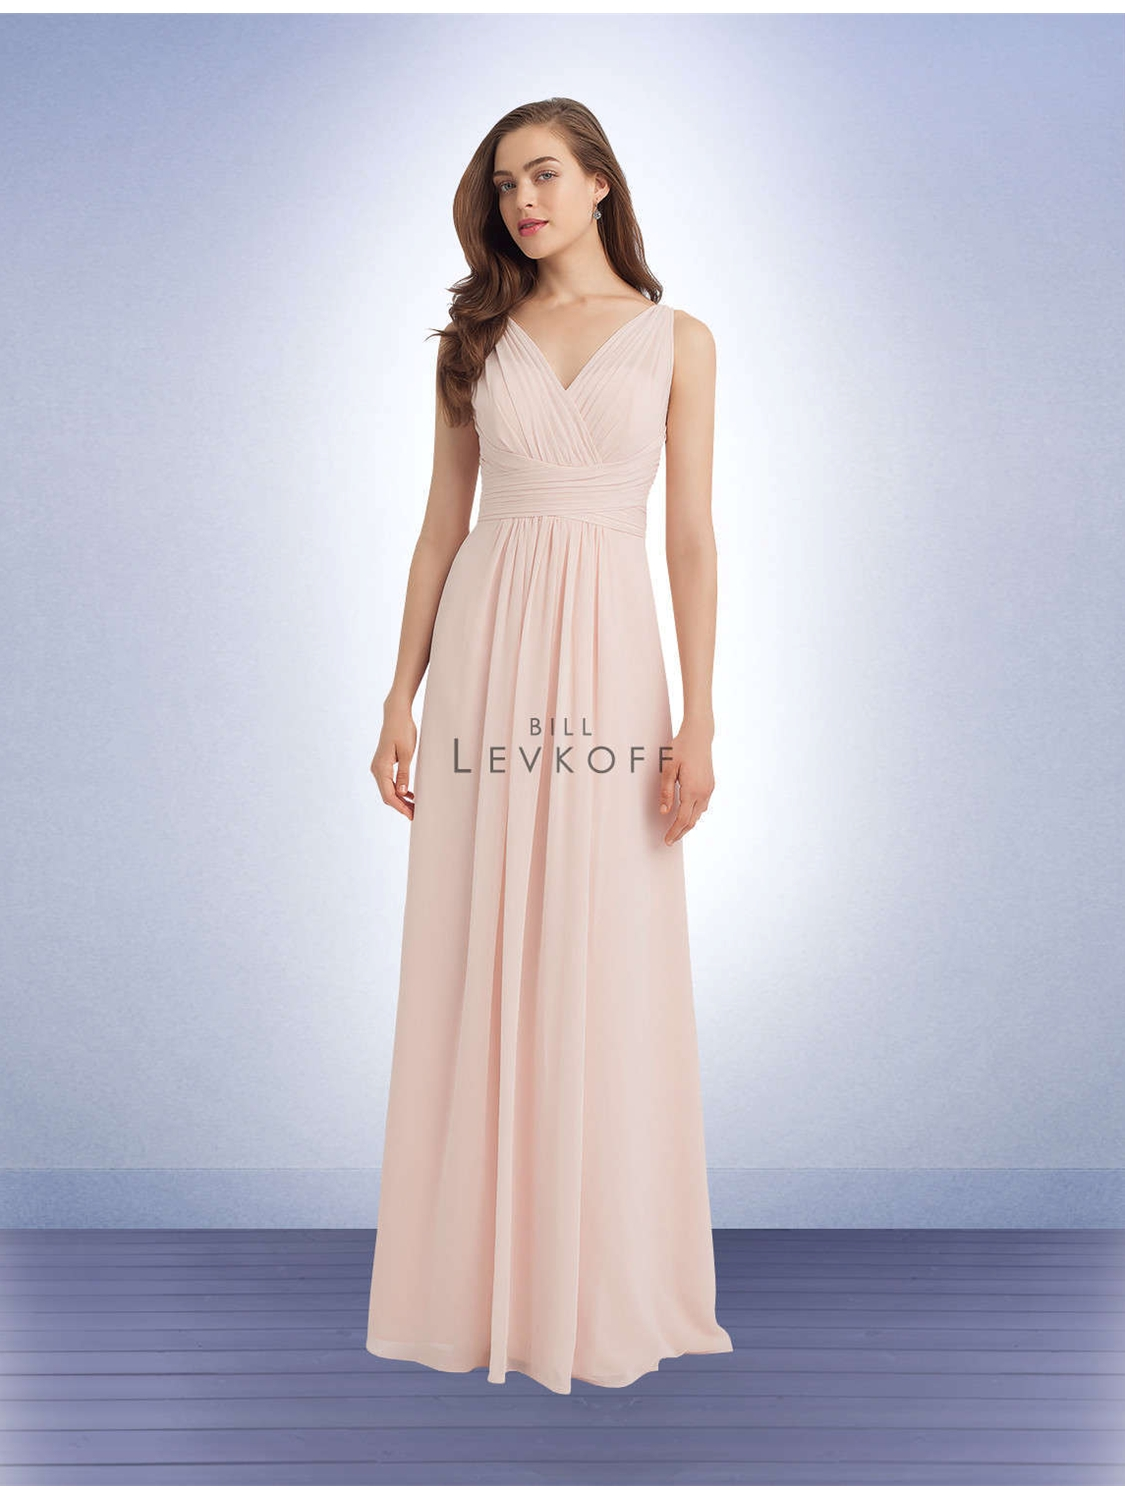 Bill levkoff bridesmaid dress style 1115 house of brides select color ombrellifo Images